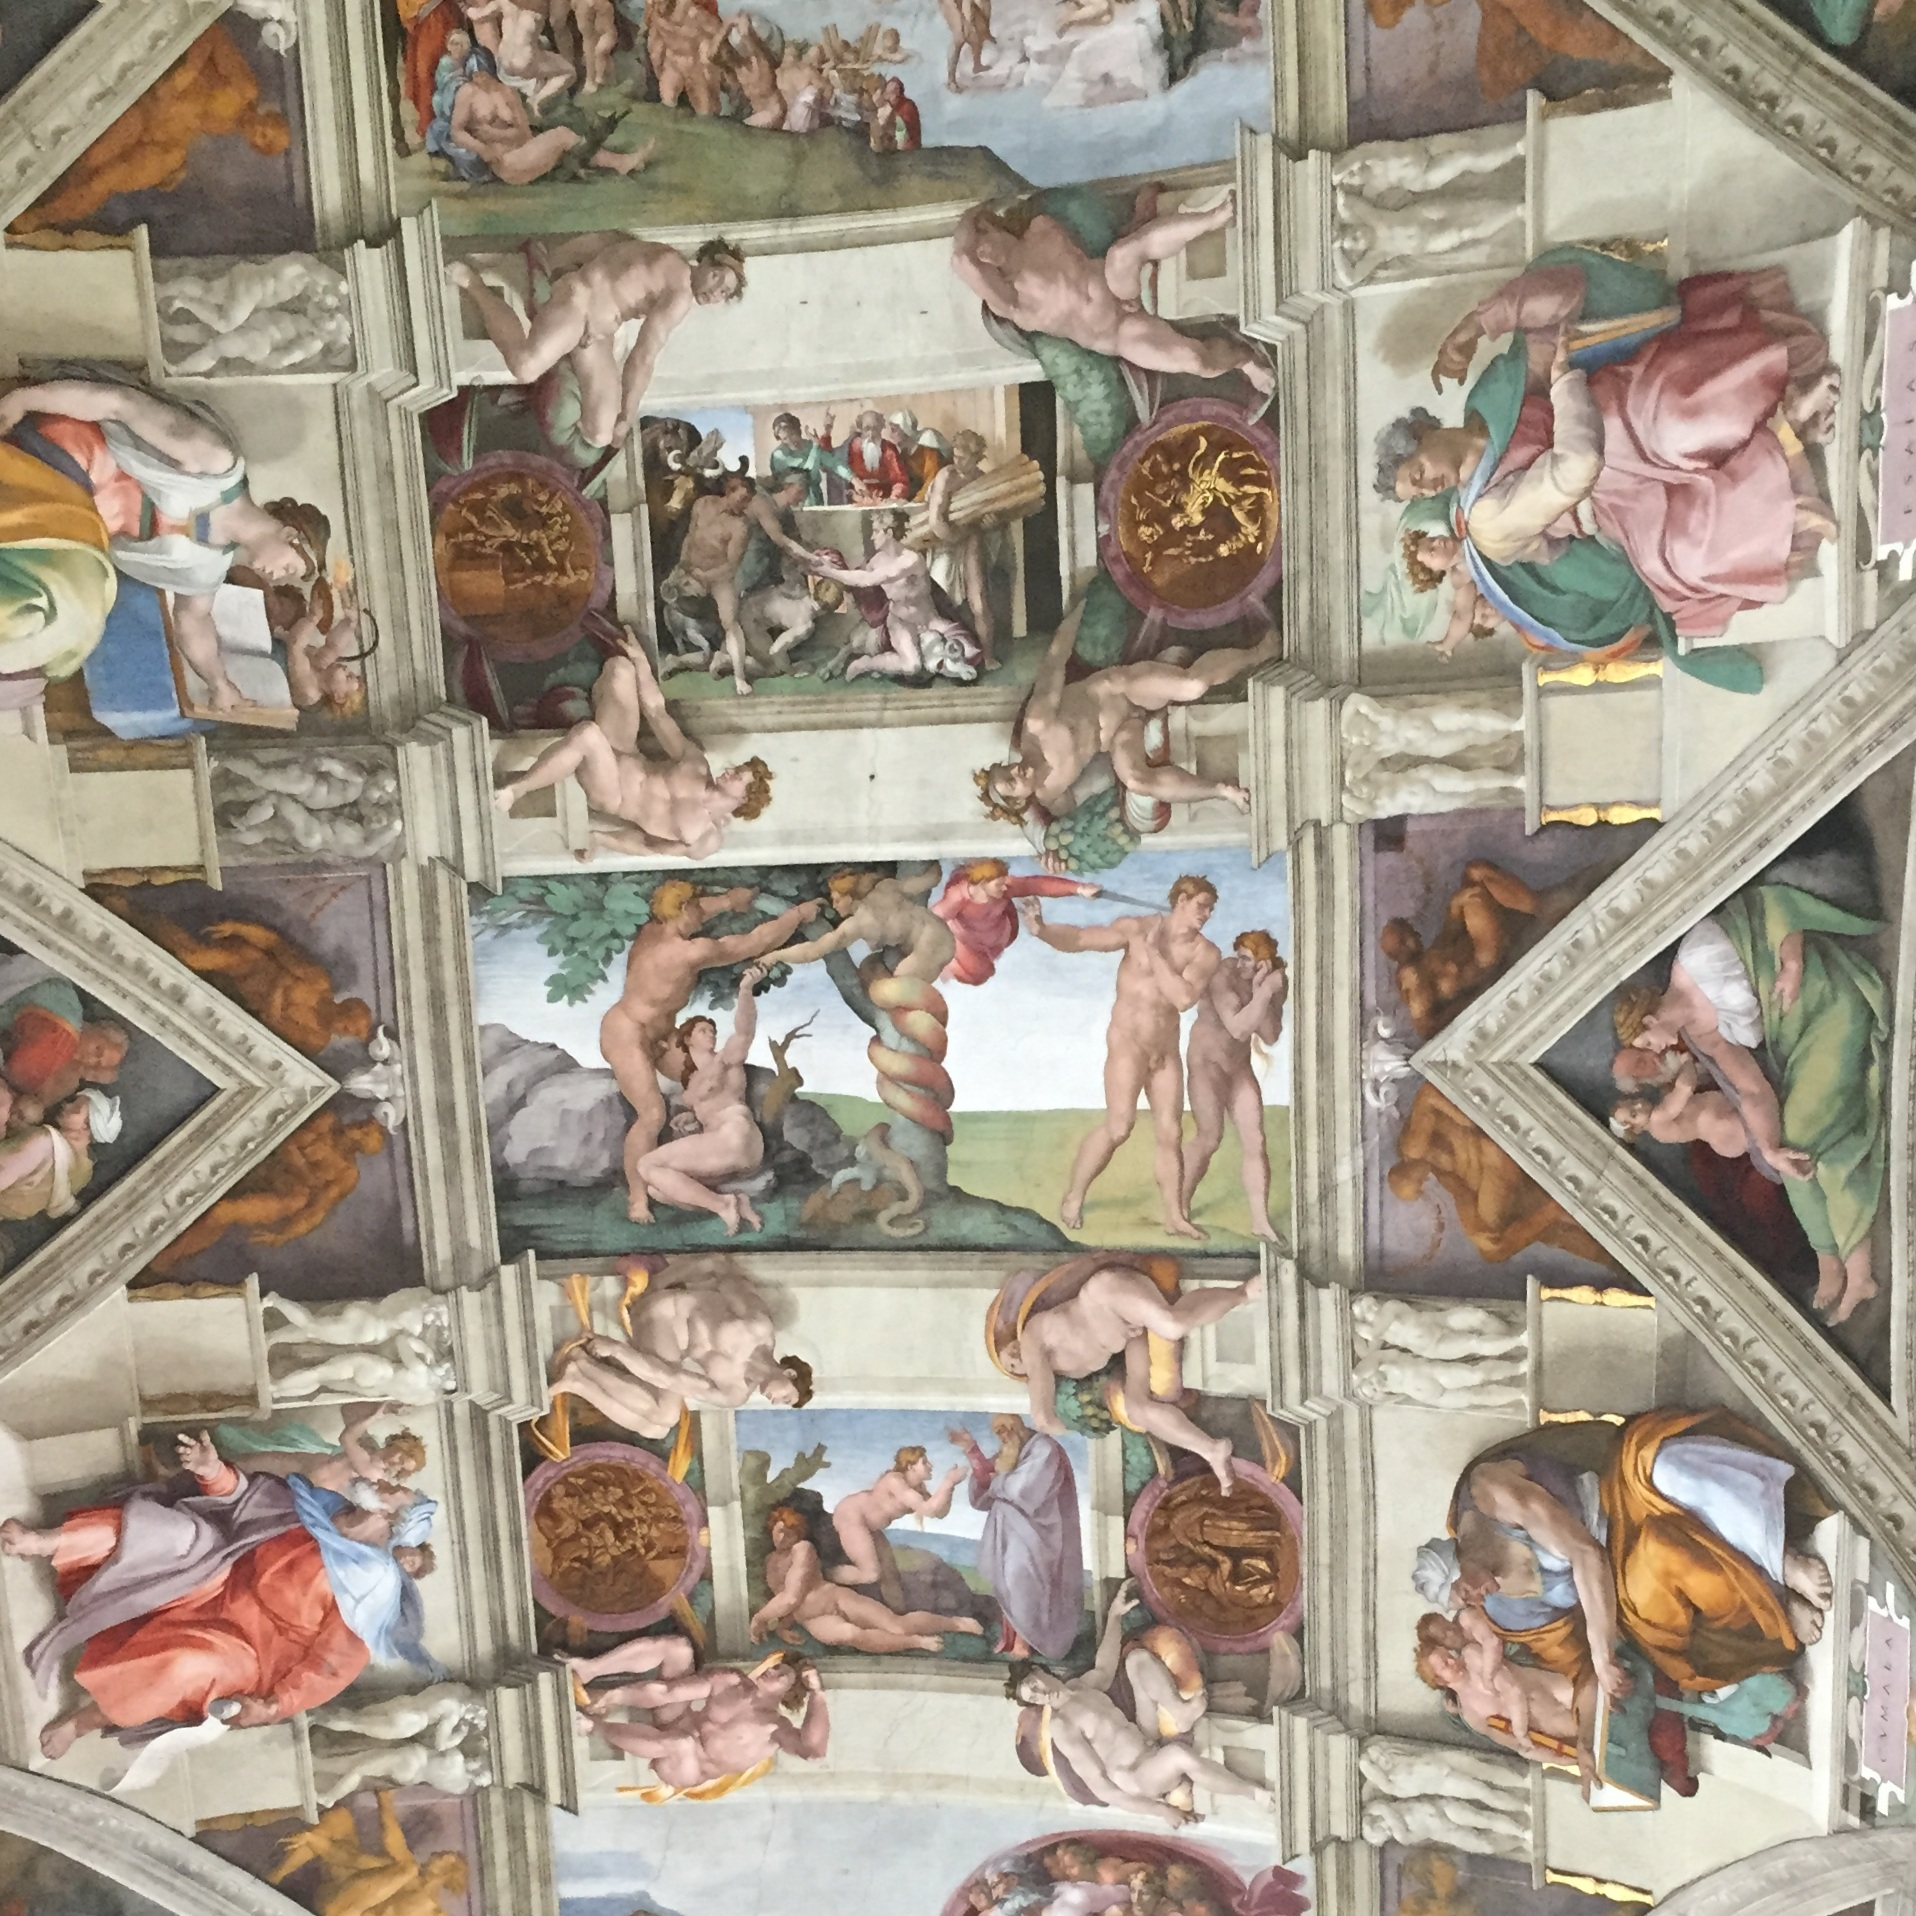 Michelangelo devised a system of organizing the ceiling frescoes painting in architectural elements using a technique called trompe l'oeil — to fool the eye. It is all pigment and plaster.